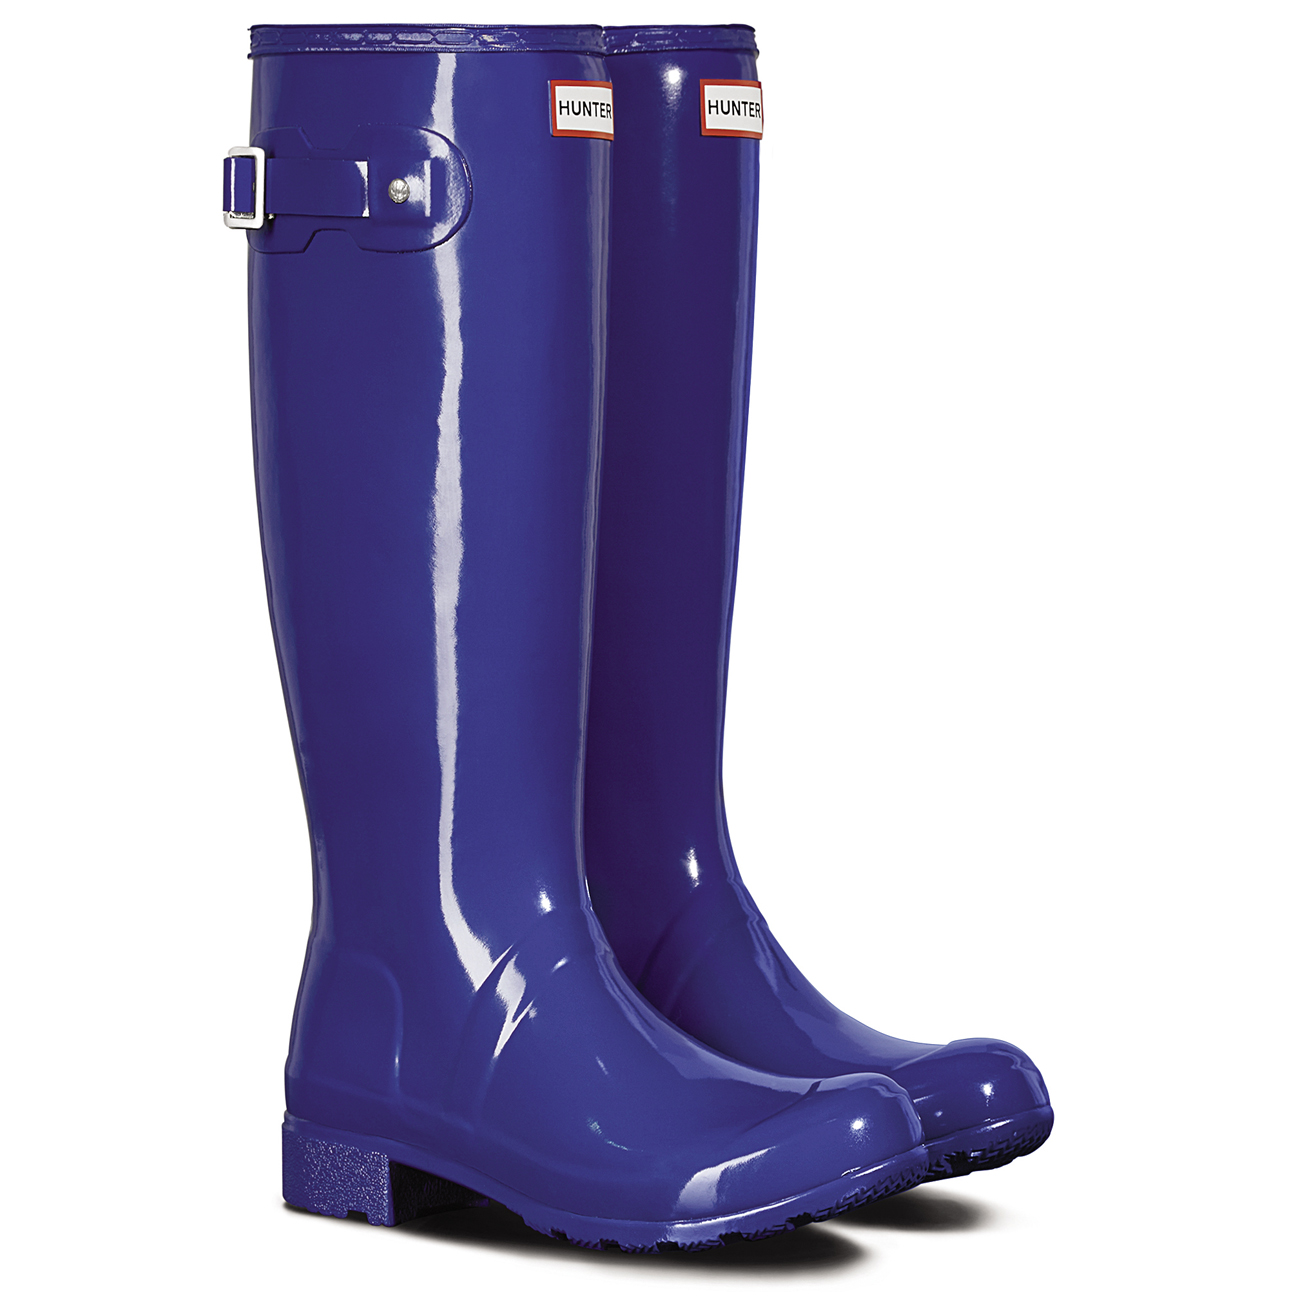 Zapatos especiales con descuento Ladies Hunter Original Tour Gloss Knee High Festival Wellingtons Boots All Sizes